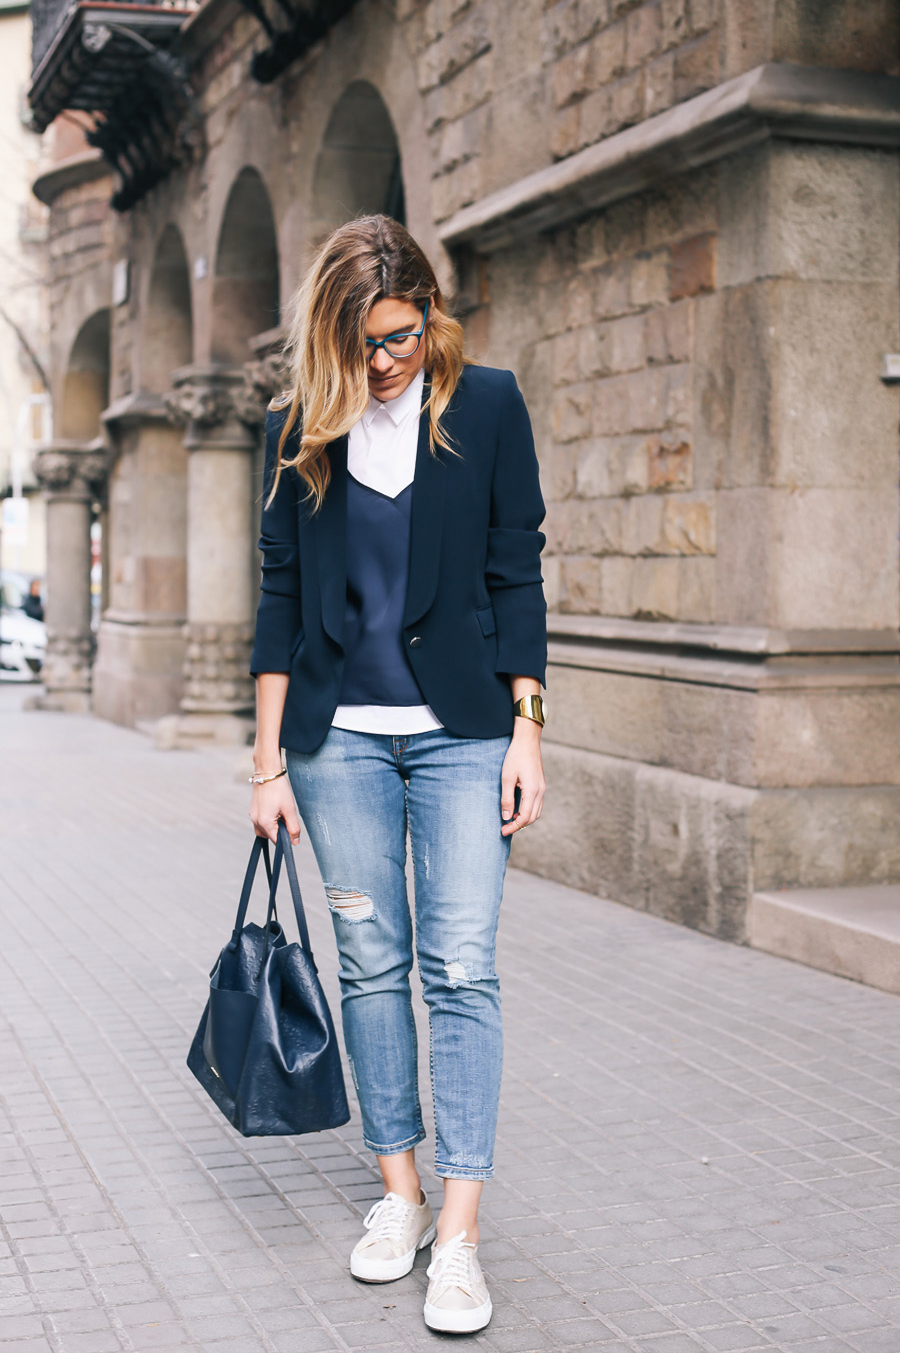 silvia_bosch_look_ikks_jeans-with-blaser